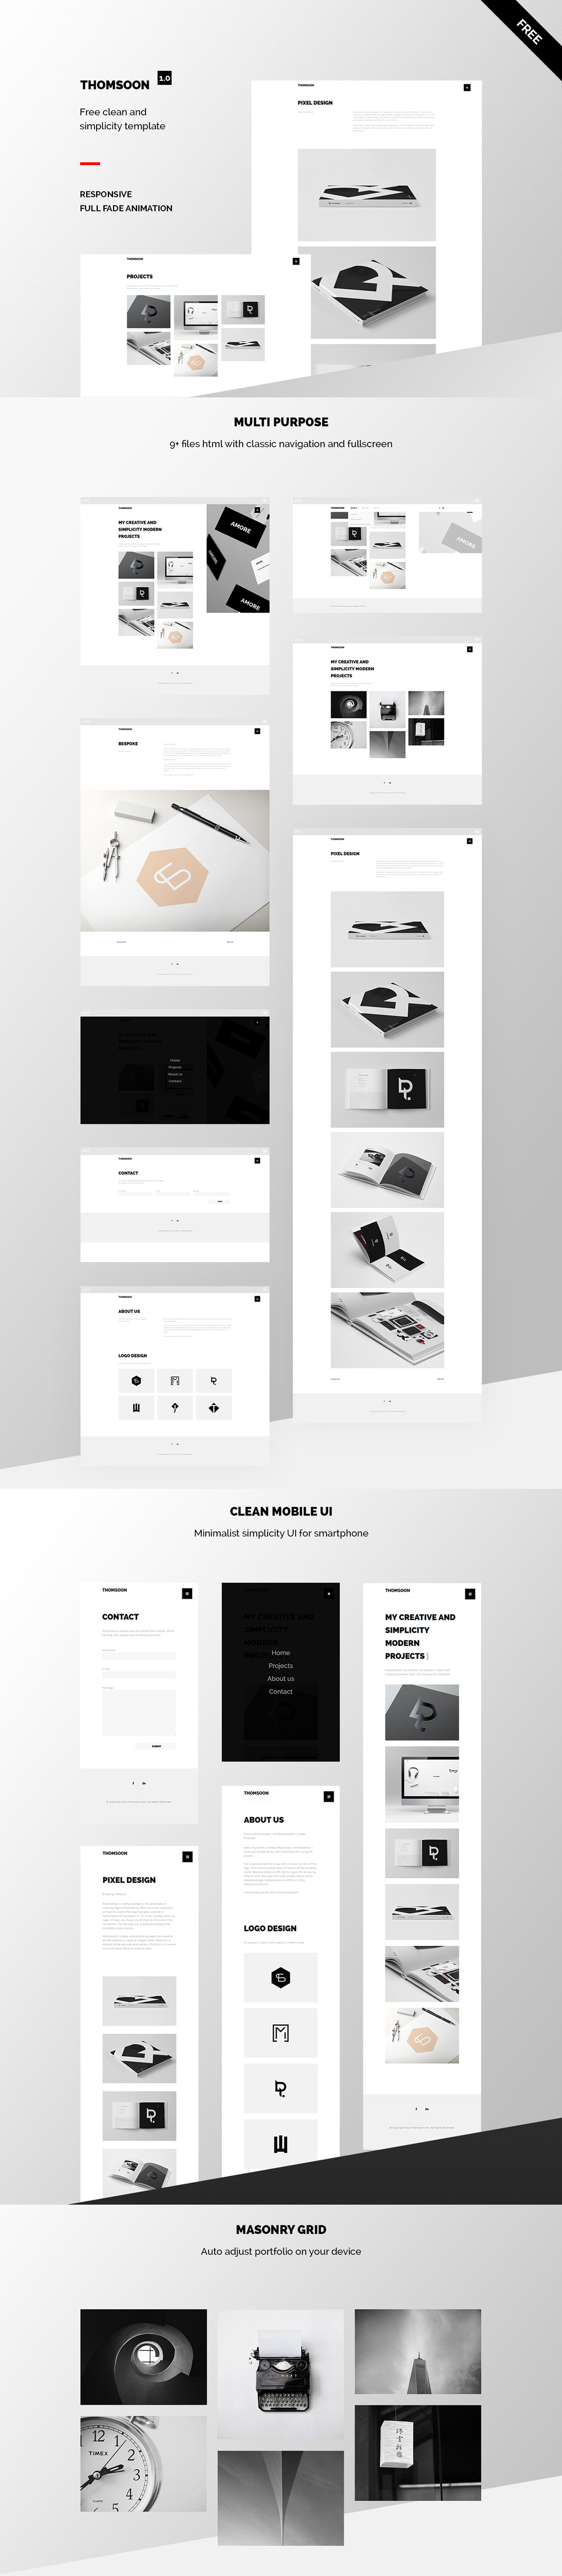 http://www.graphicsfuel.com/wp-content/uploads/2015/05/free-responsive-website-theme-full.jpg